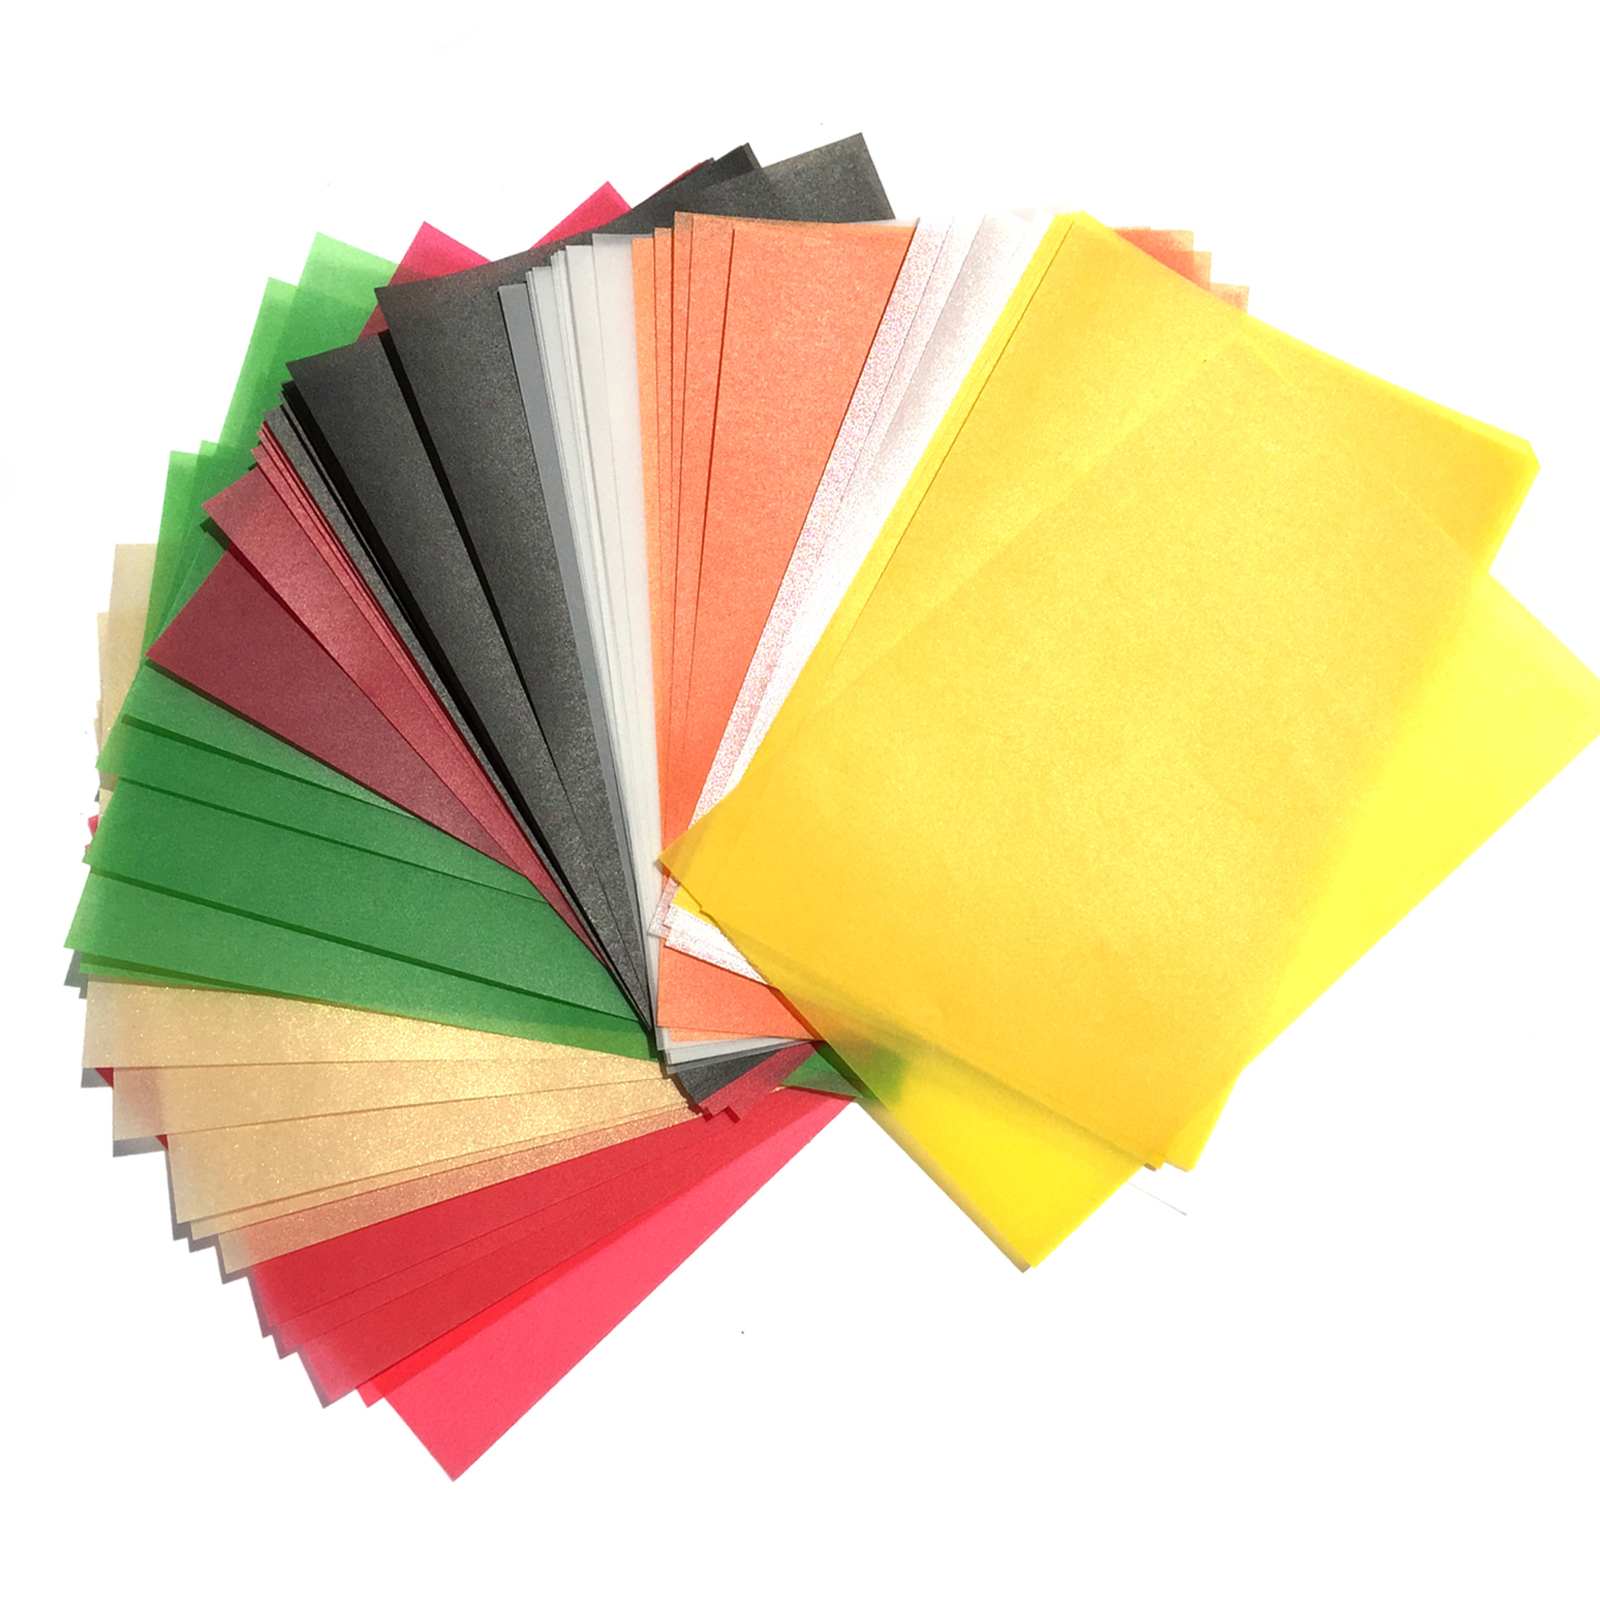 15*10cm Art BACK POST CARD Paper white Tracing paper colorful Sulfuric Acid Paper